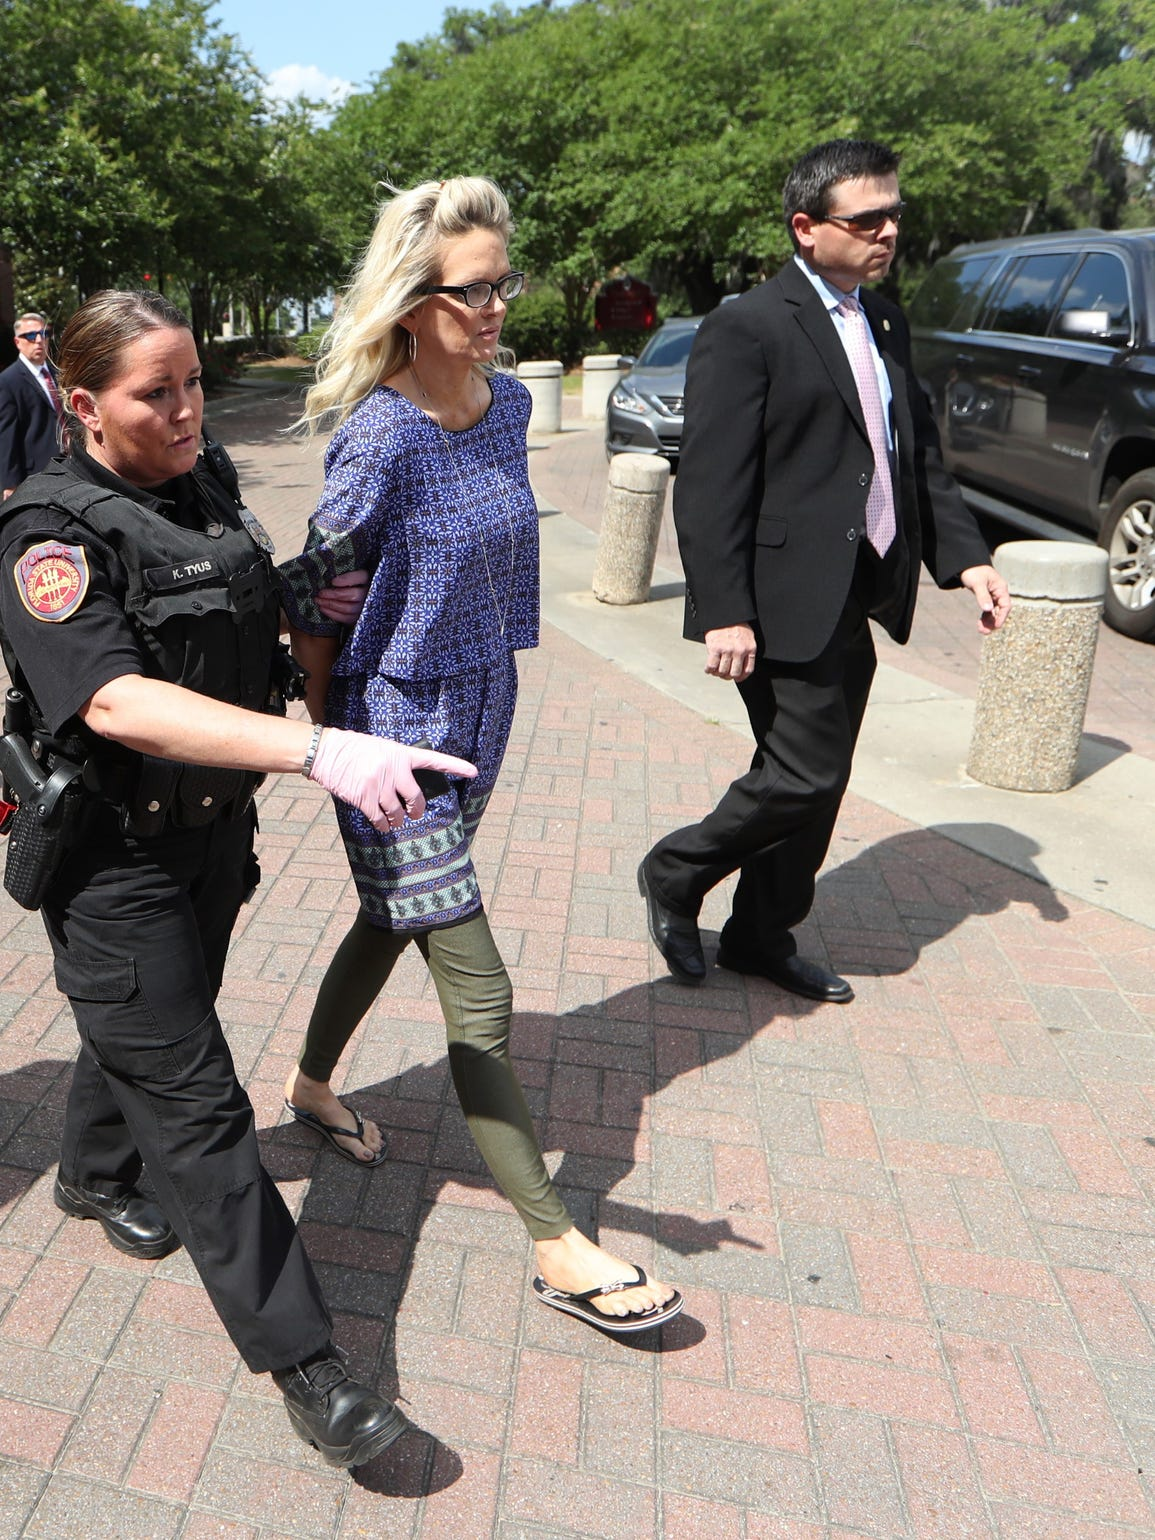 Denise Merrell Williams, 48, is led out of her accounting office at Doak Campbell Stadium in handcuffs on May 8, after a Leon County grand jury indicted her on a charge of first-degree murder of Mike Williams.